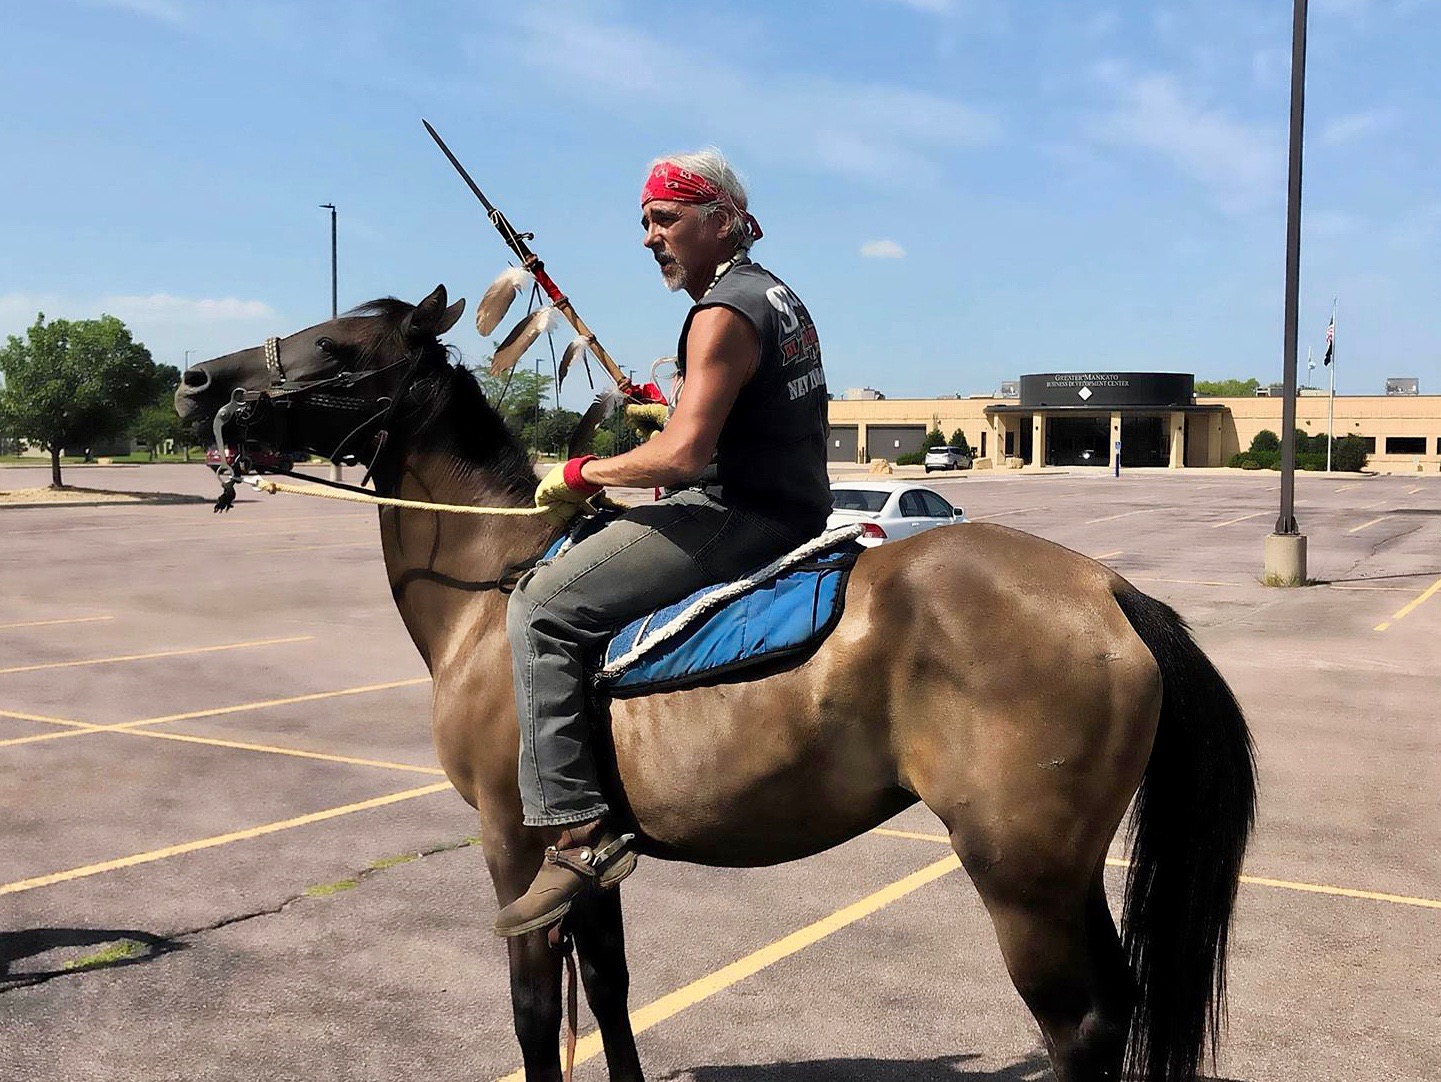 'Release our brother': Riders seek justice for Leonard Peltier